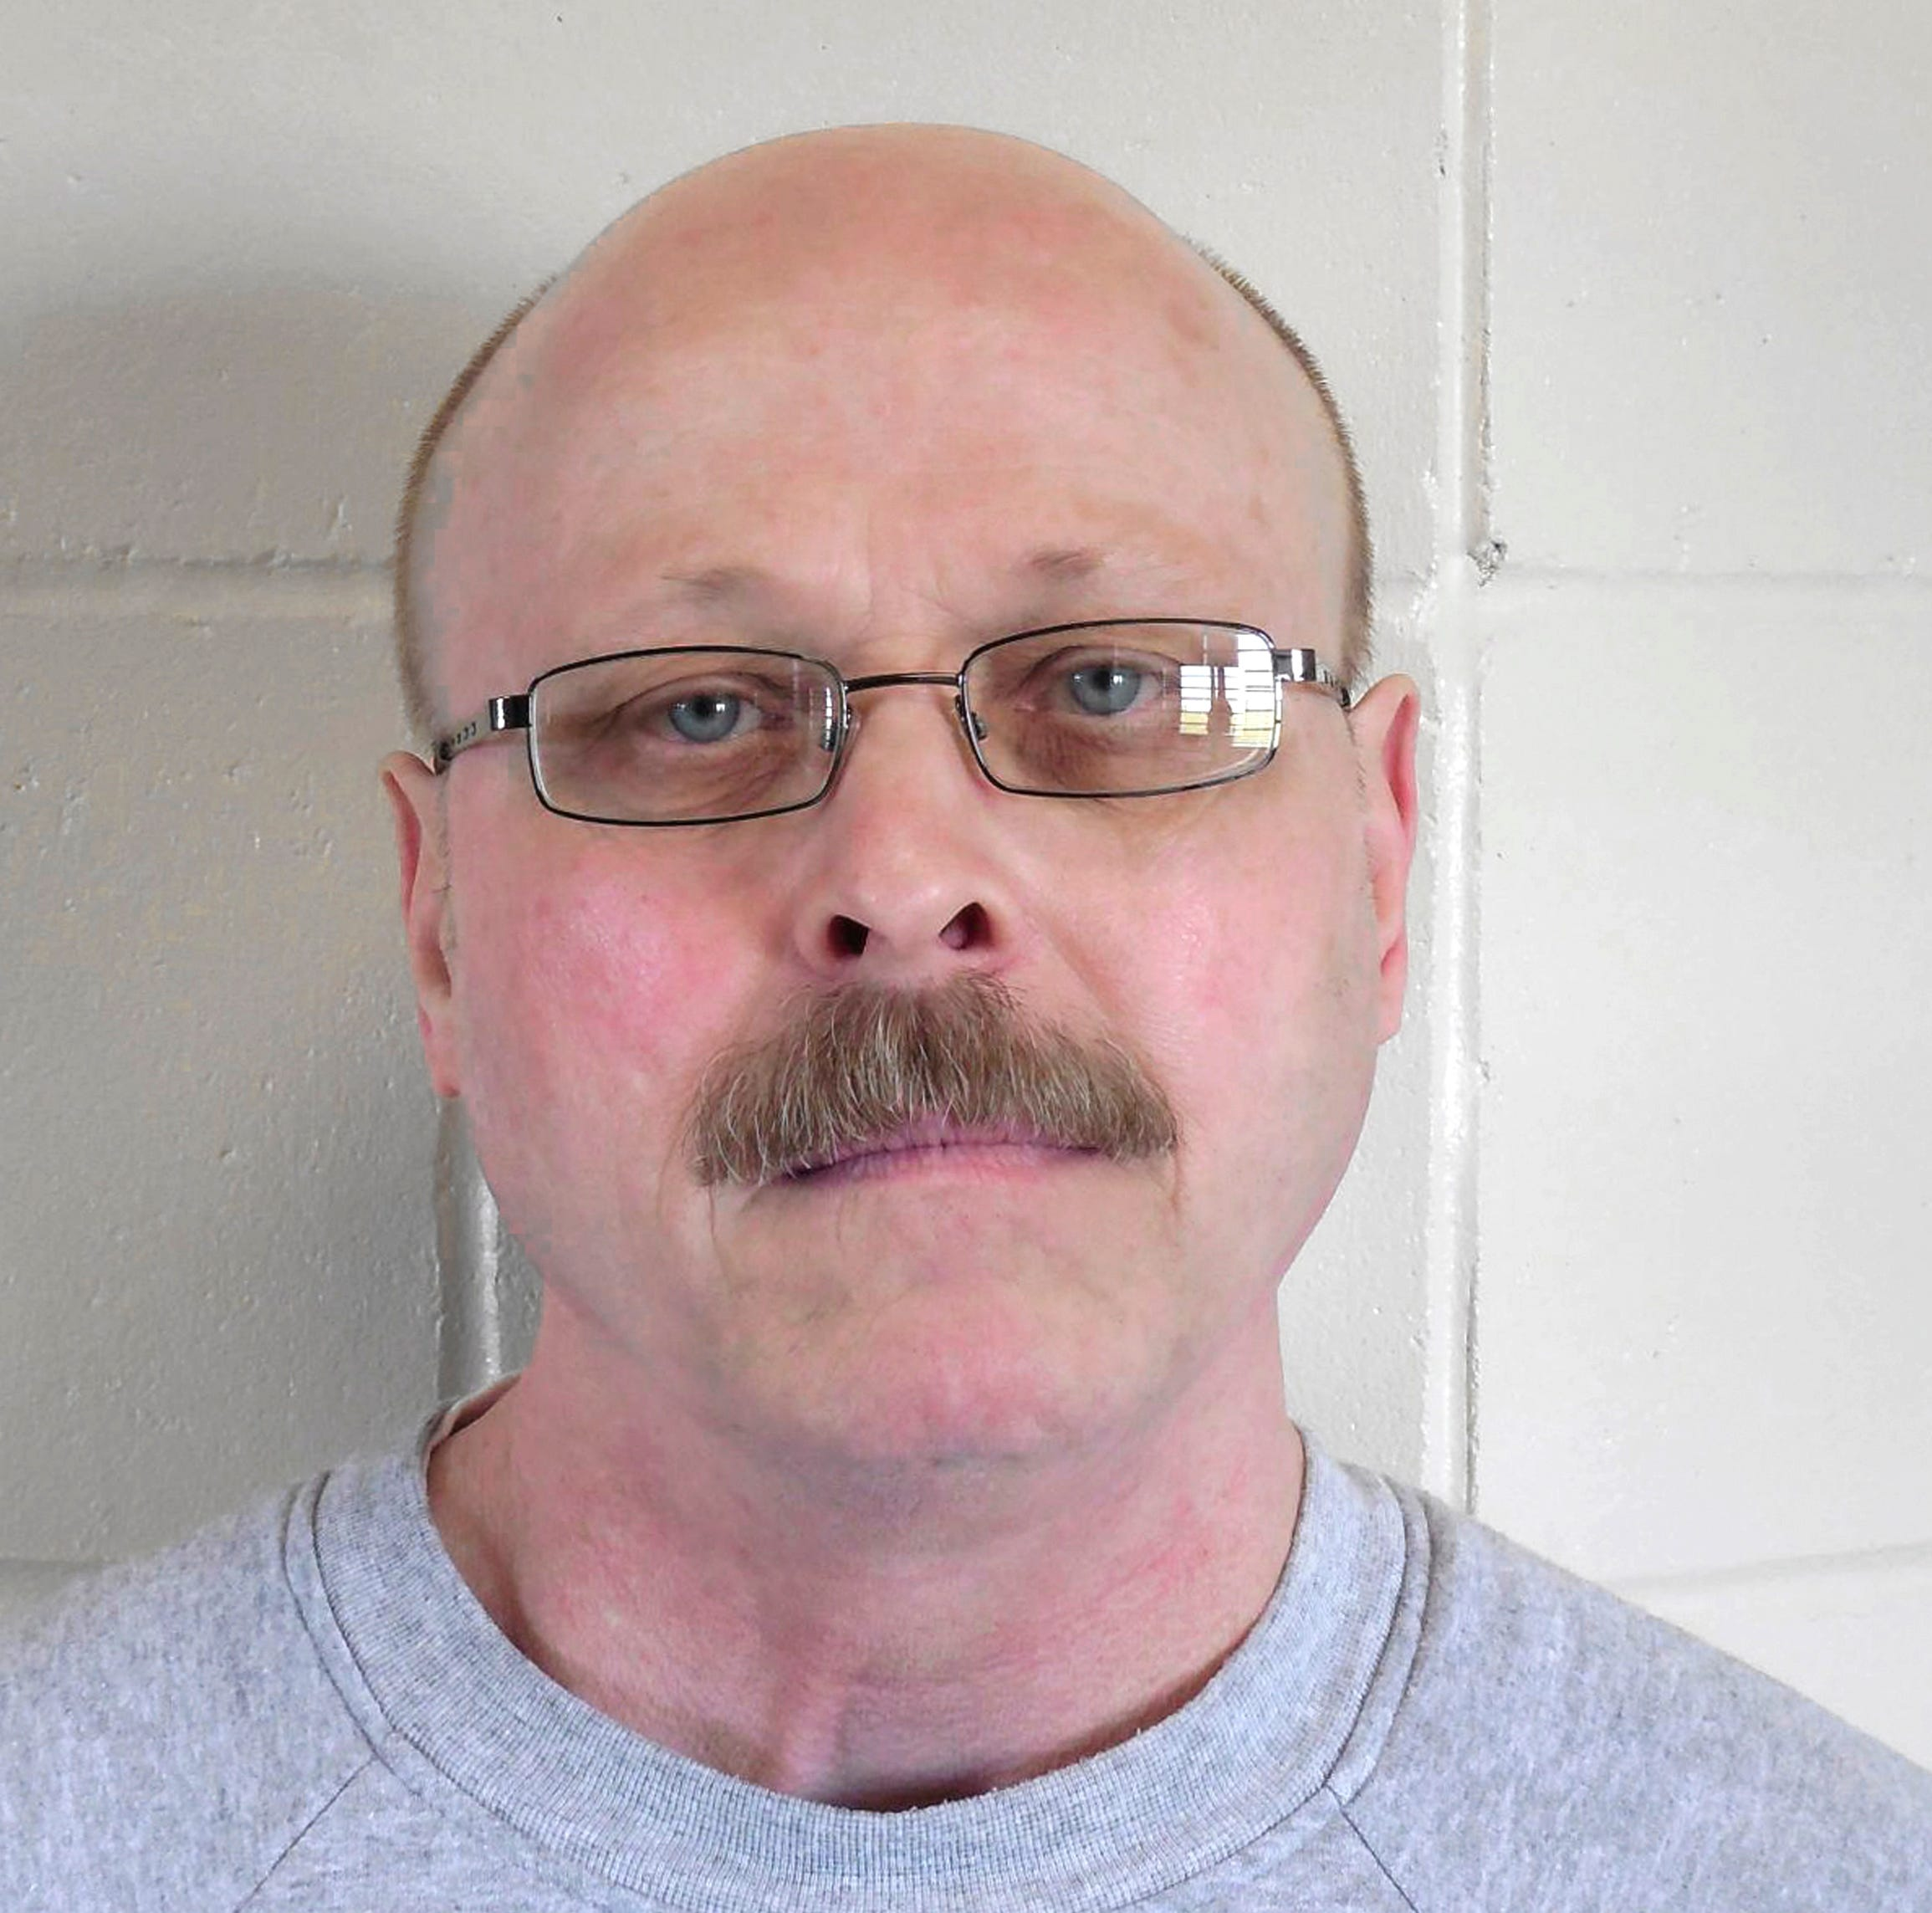 Carey Dean Moore says 'I love you' before dying in Nebraska's first execution by lethal injection using fentanyl